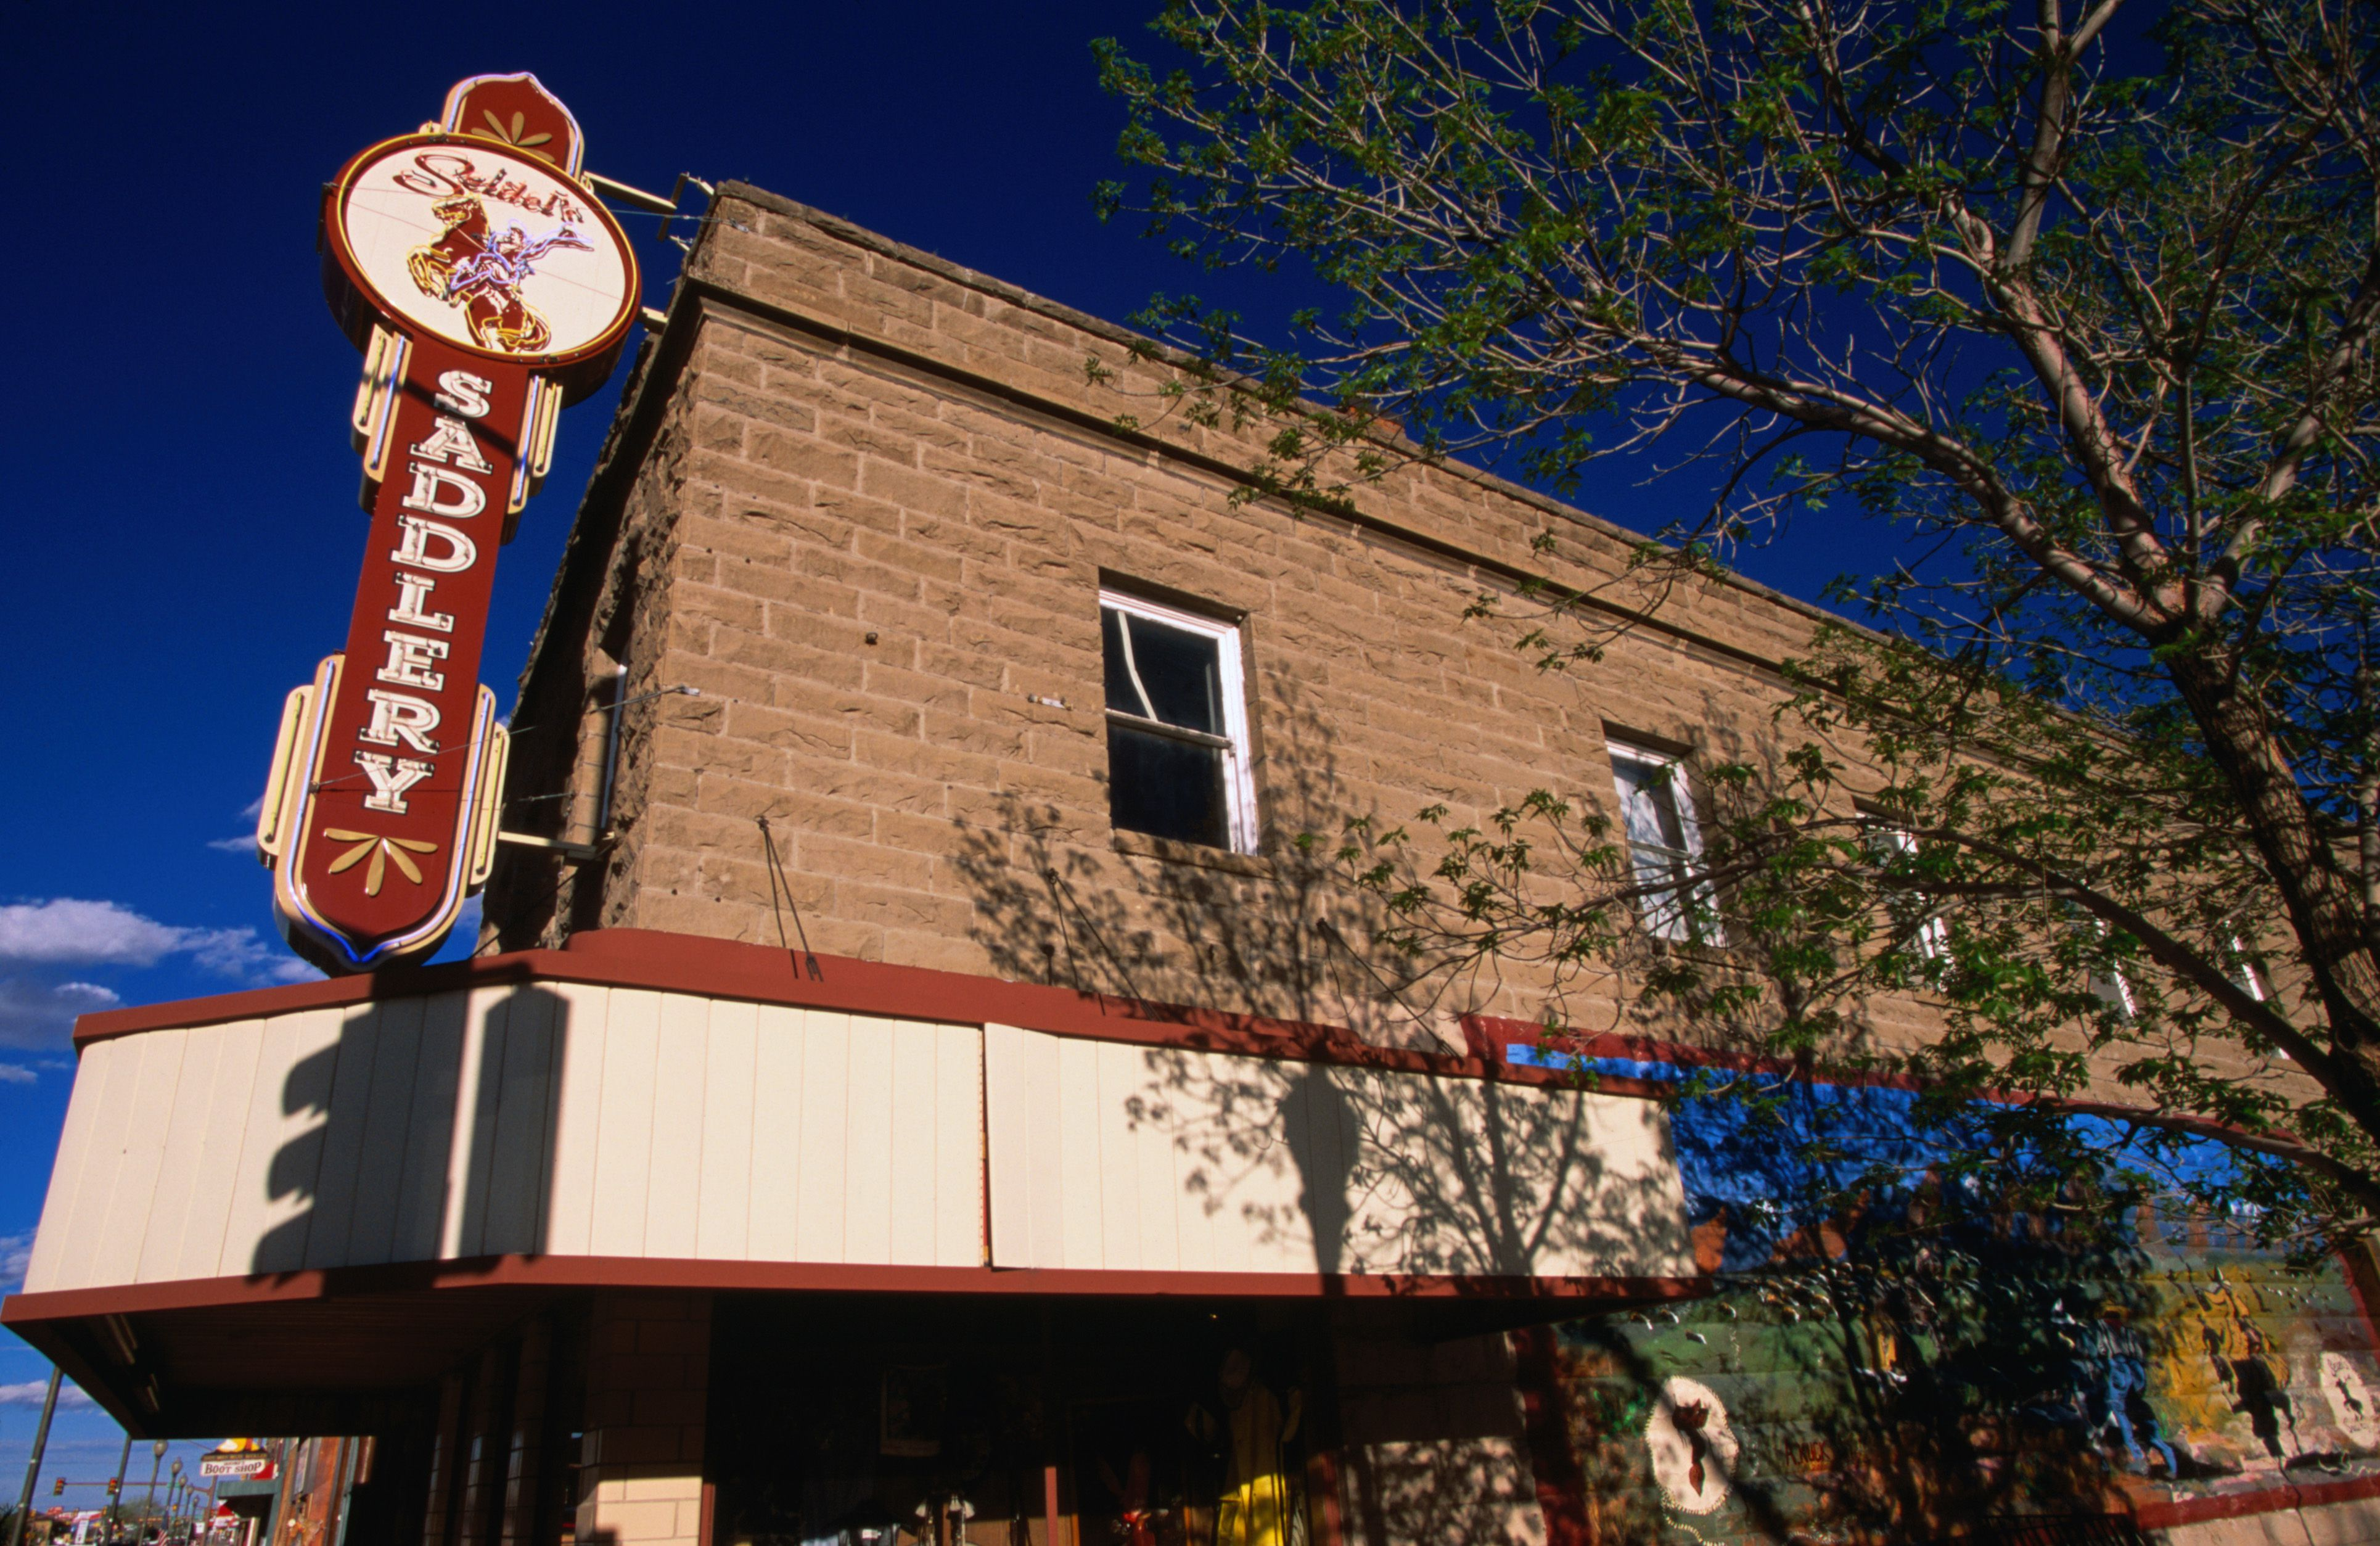 Seidel's Saddlery for western riding supplies and gifts in Cody.